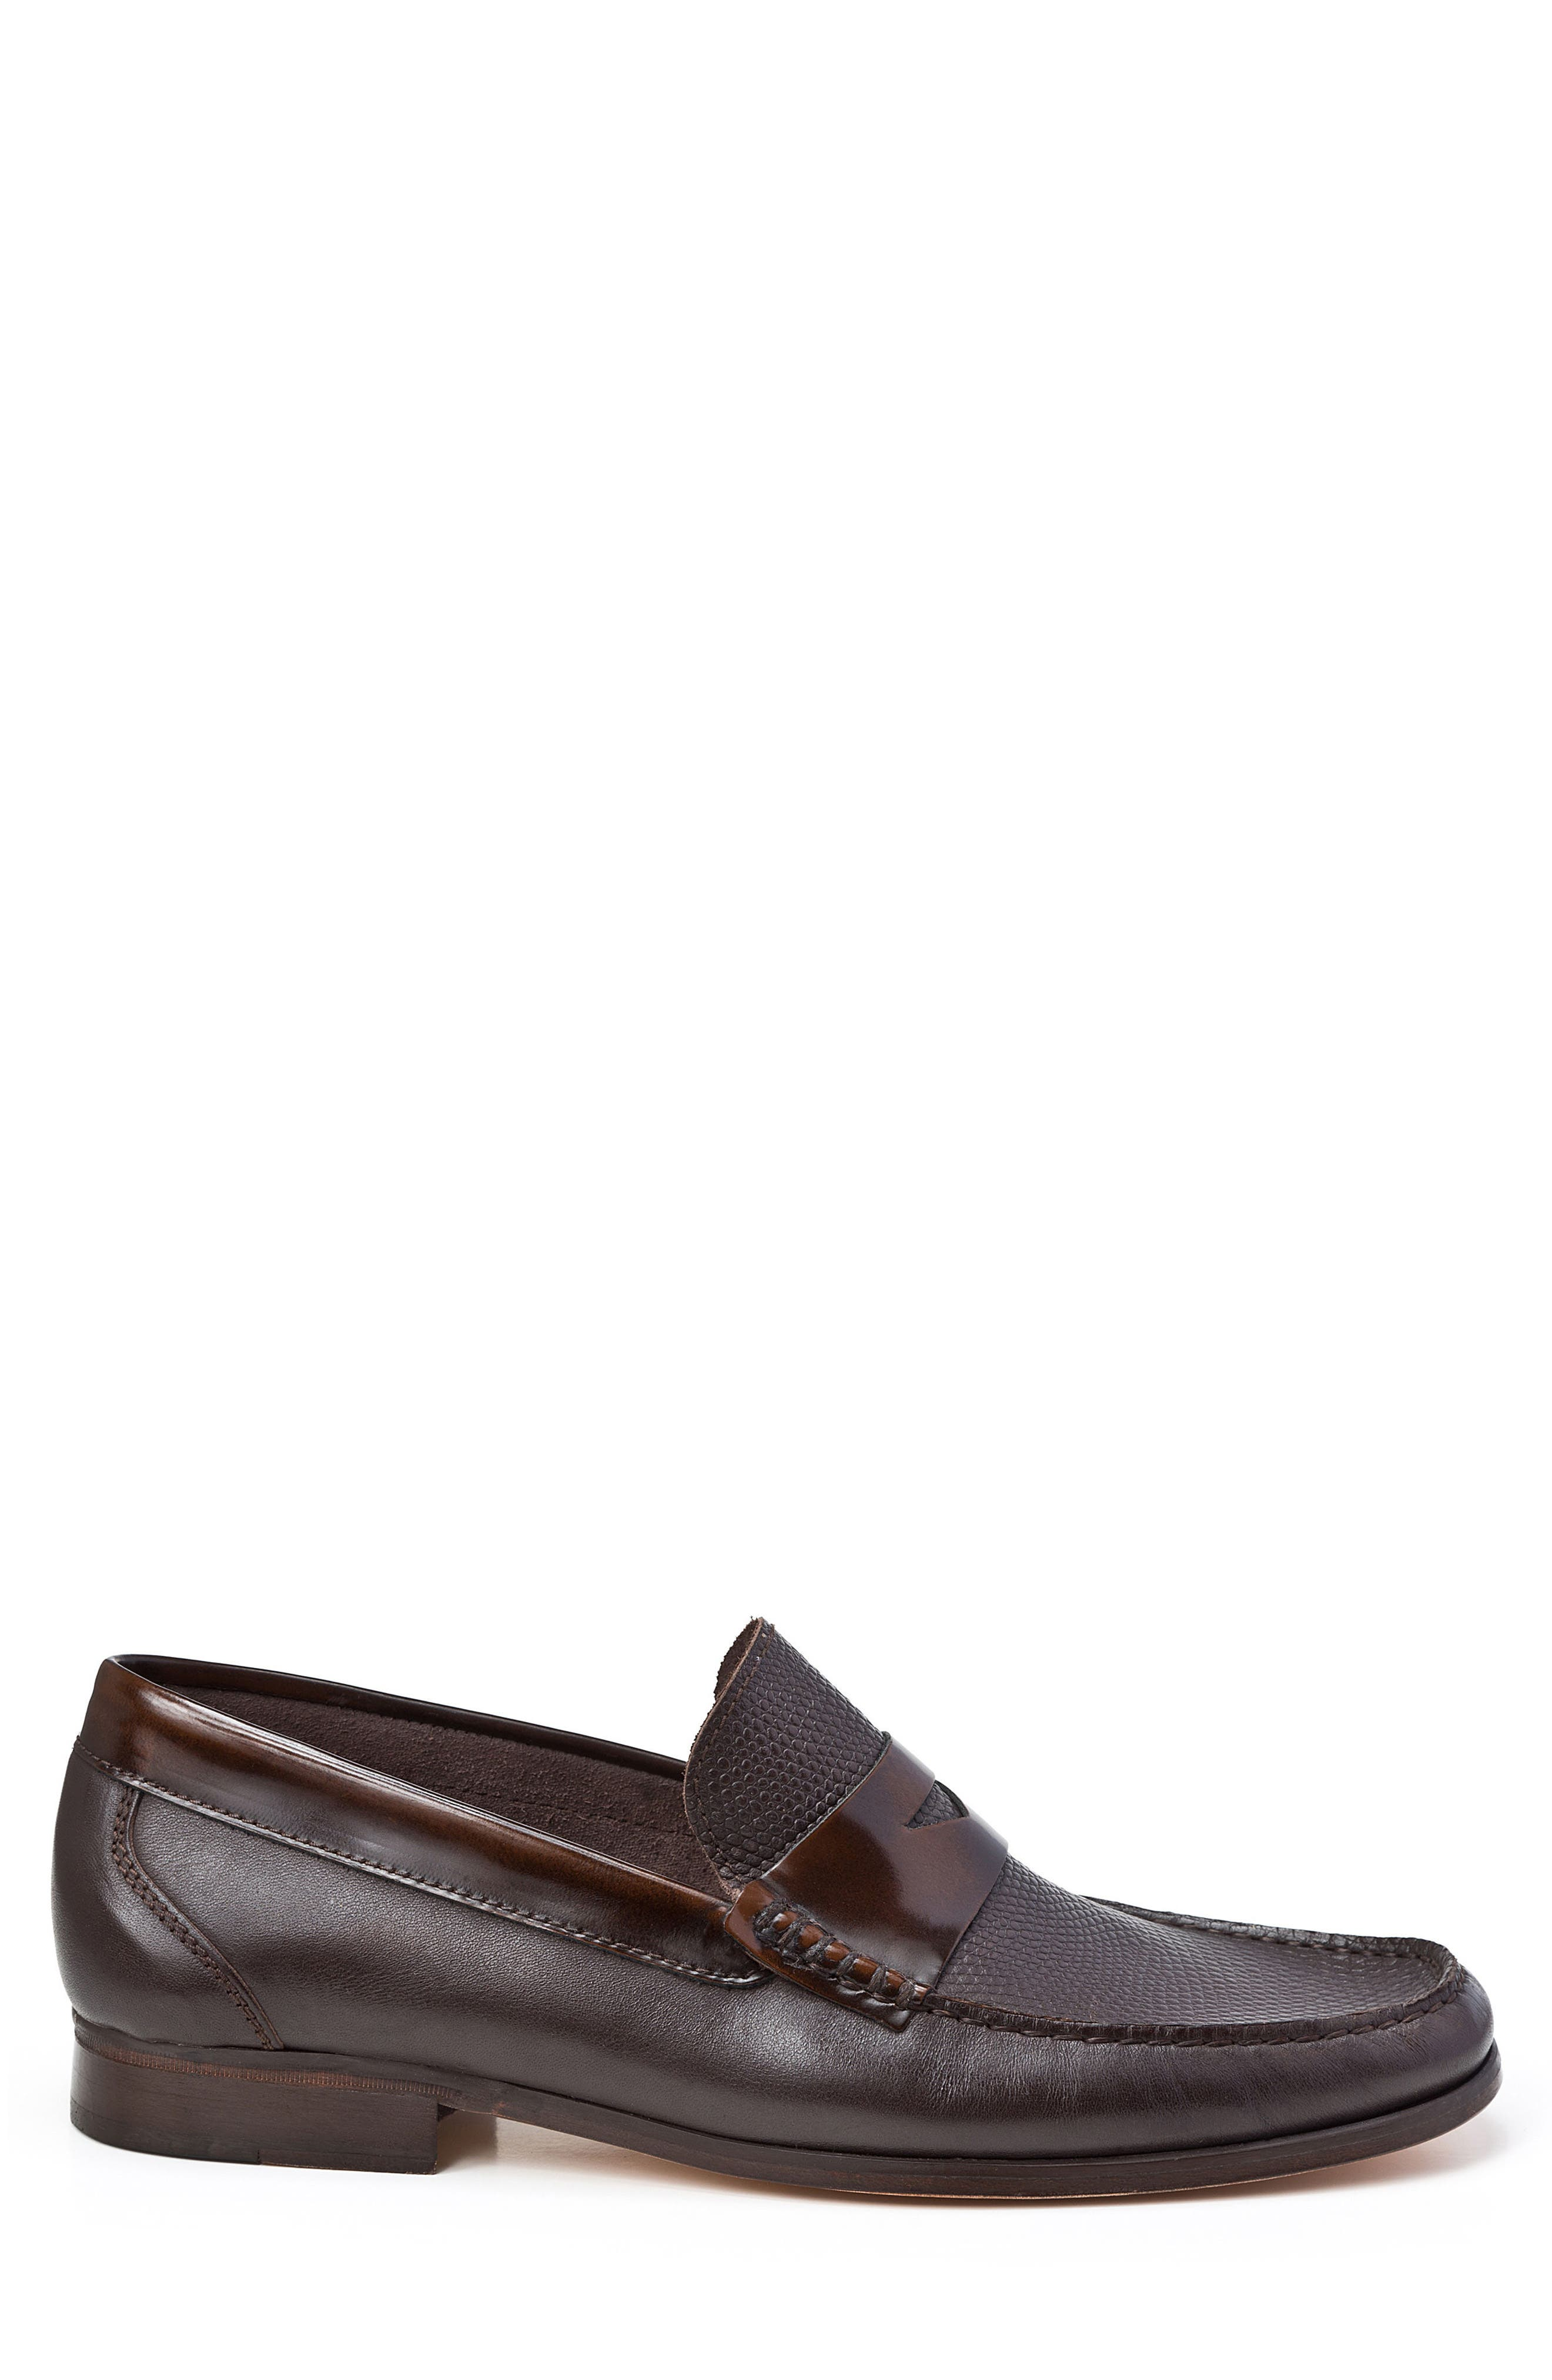 Bilbao Pebble Embossed Penny Loafer,                             Alternate thumbnail 3, color,                             BROWN